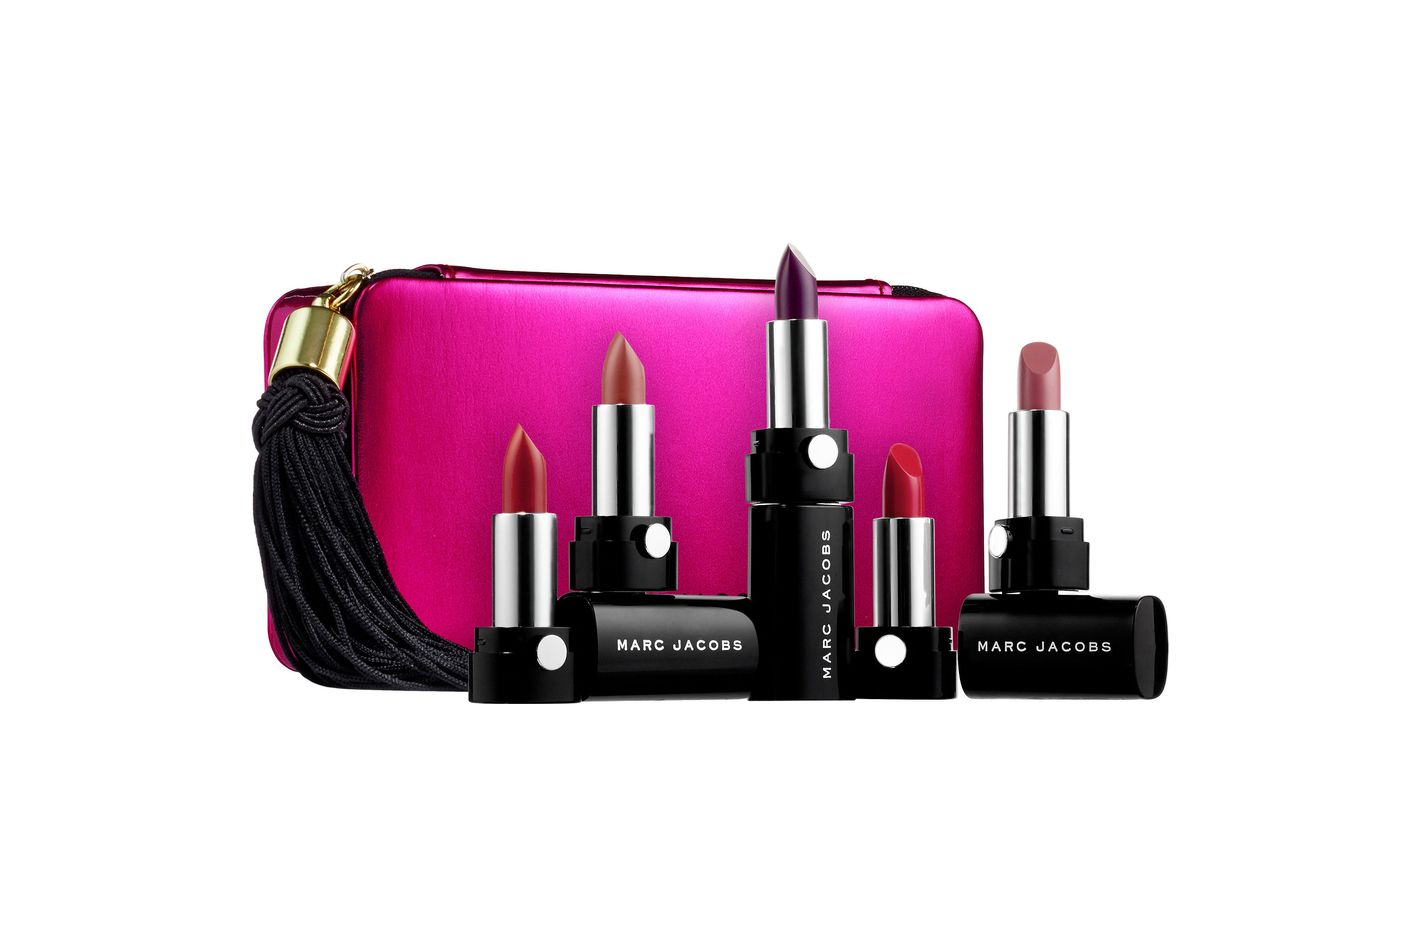 Marc Jacobs Beauty Up All Night Five-Piece Petites Le Marc Lip Crème Collection